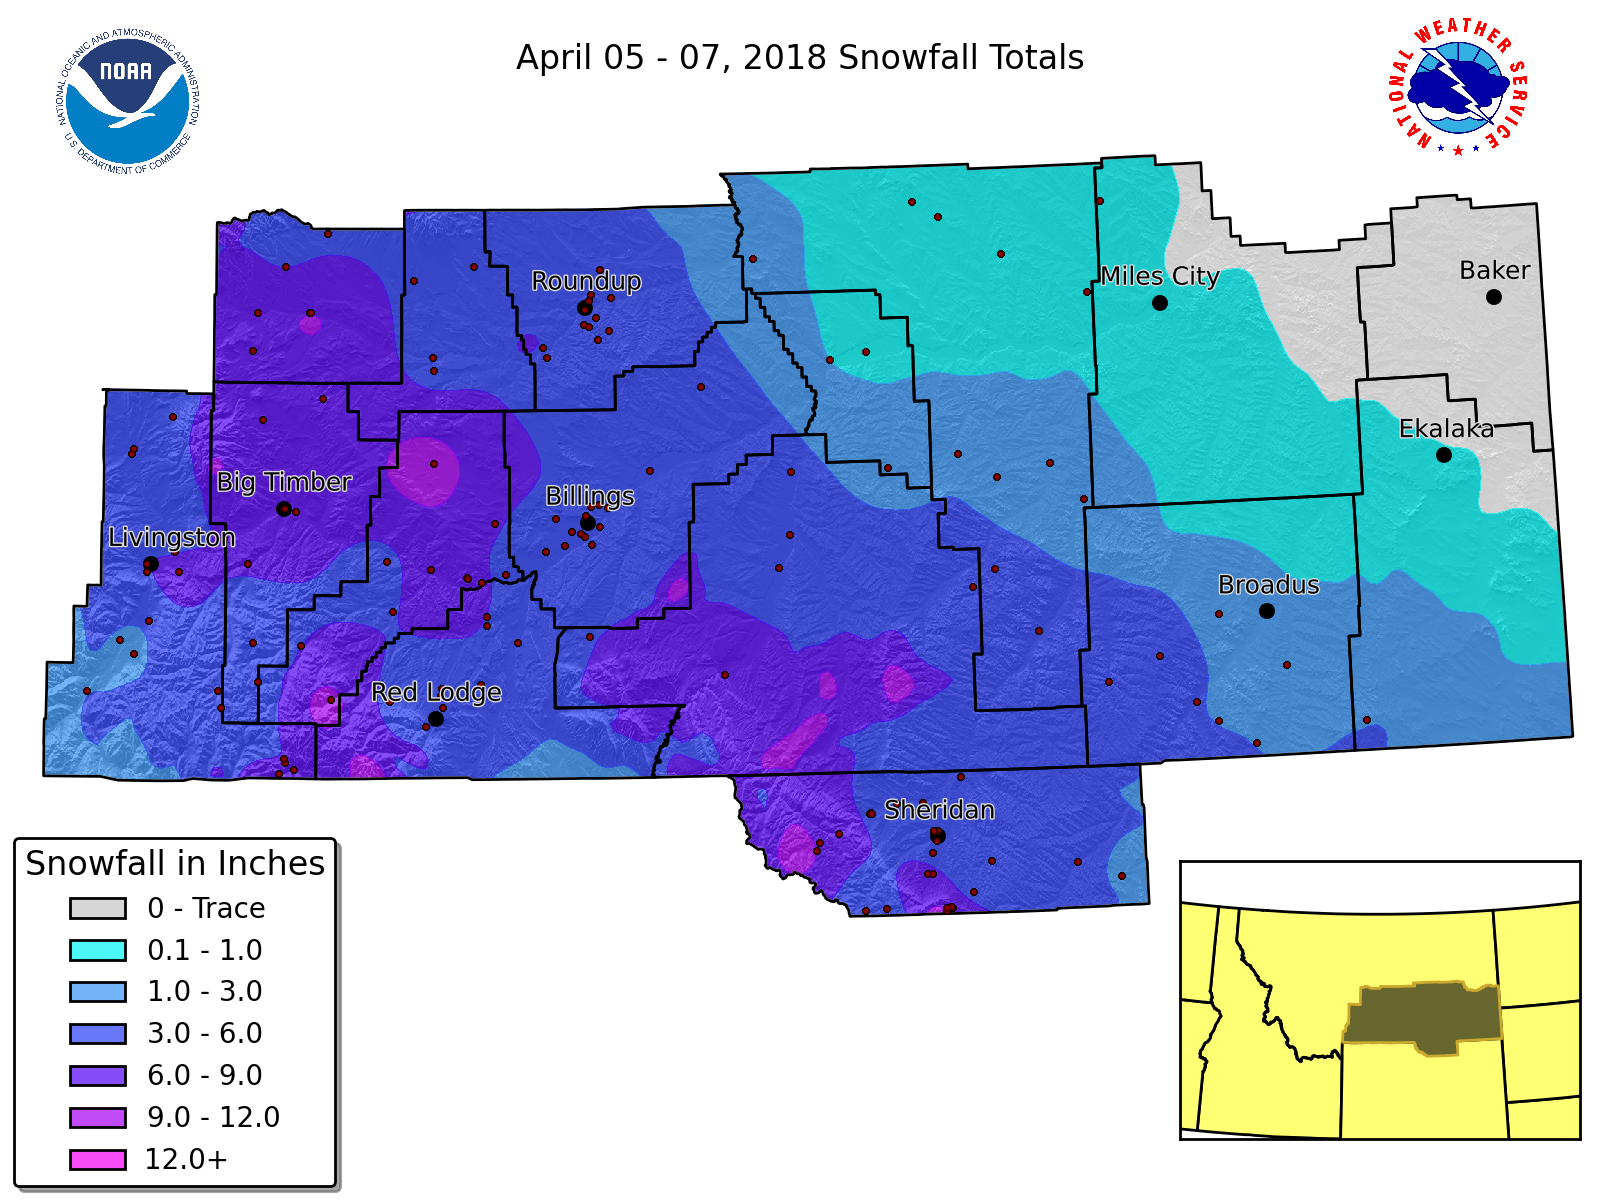 April 05 07 2018 Snowfall Totals